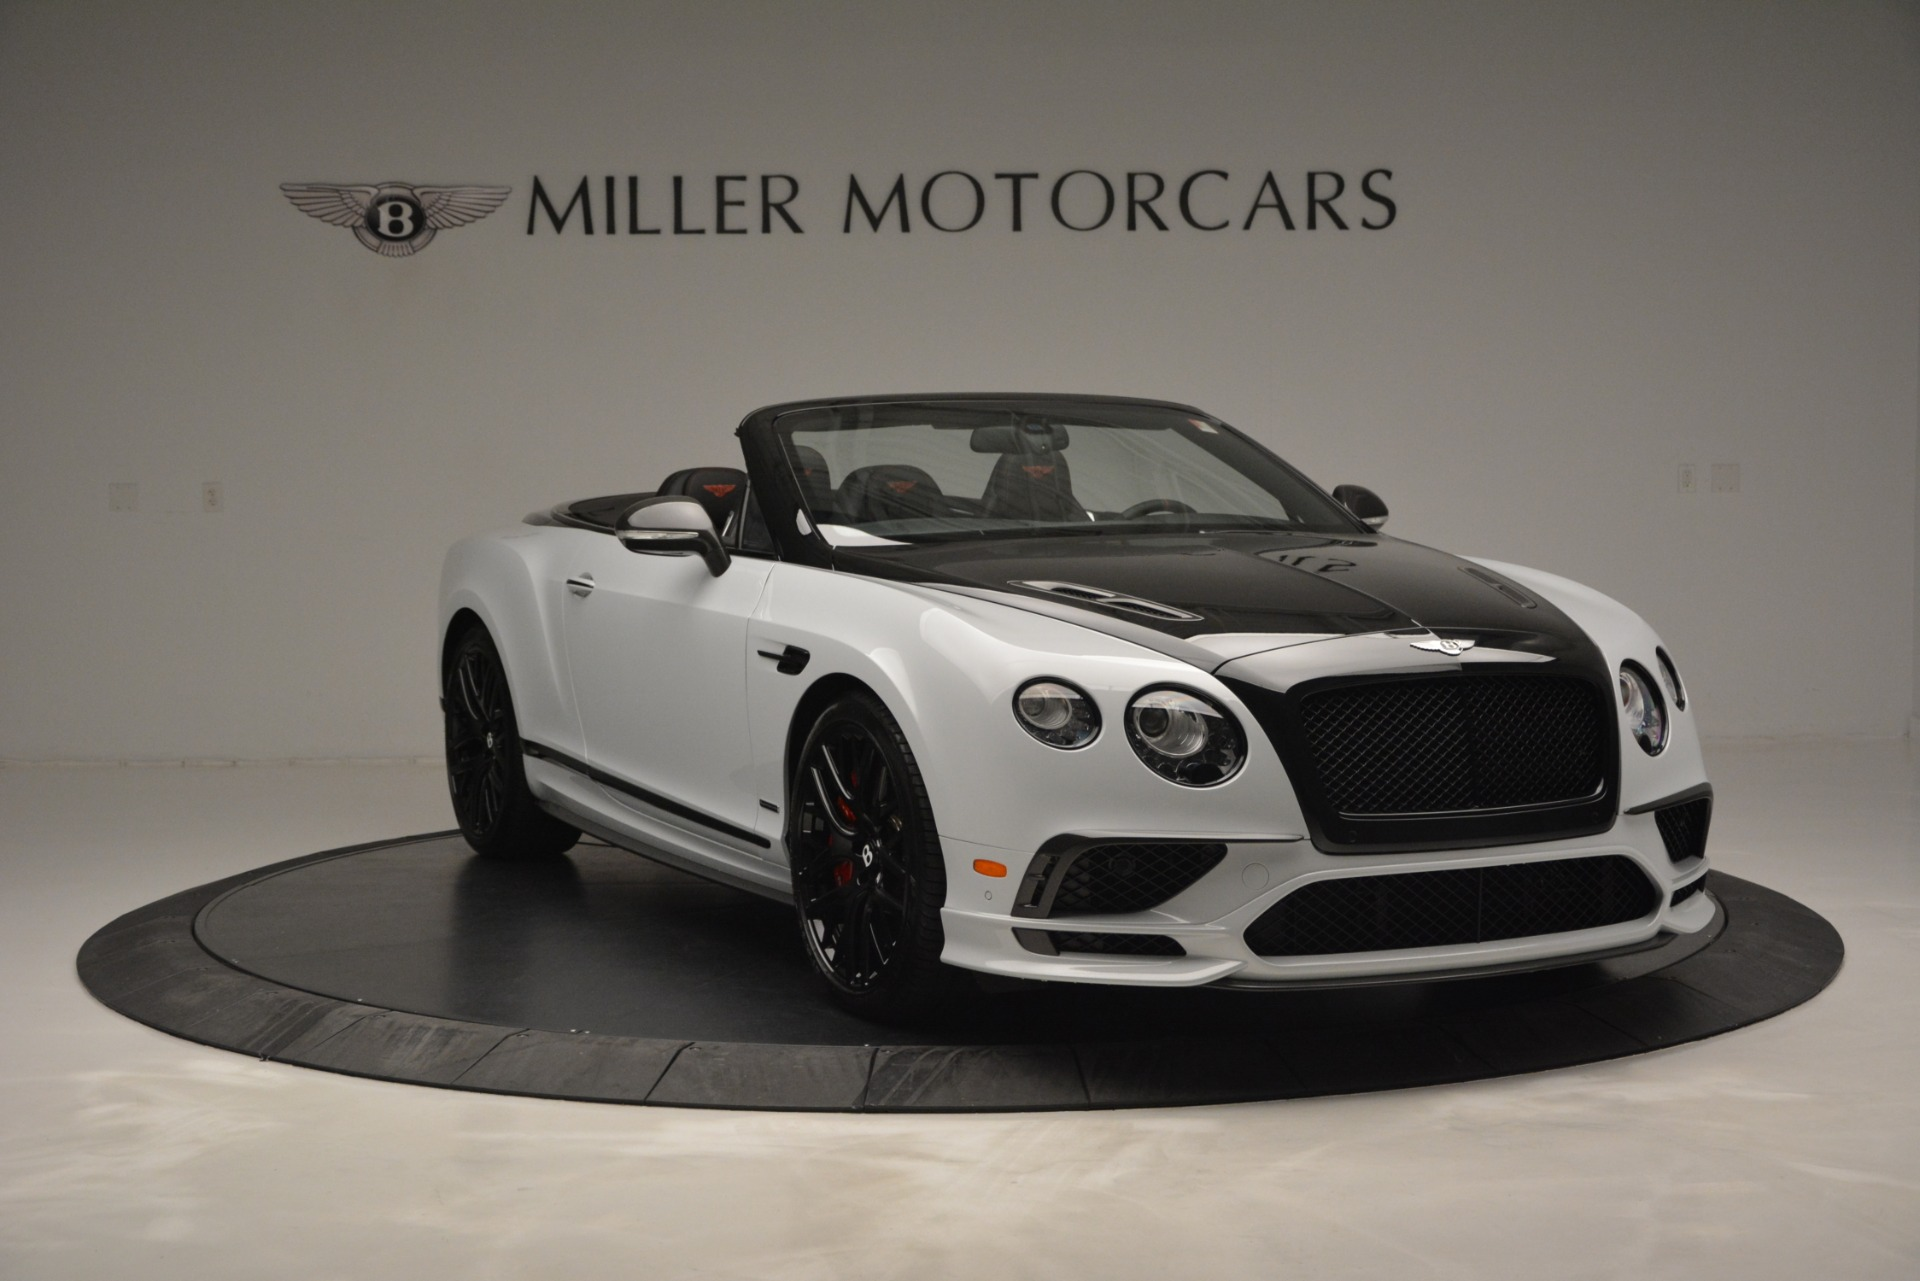 New 2018 Bentley Continental Gt Supersports Convertible For Sale Miller Motorcars Stock B1384